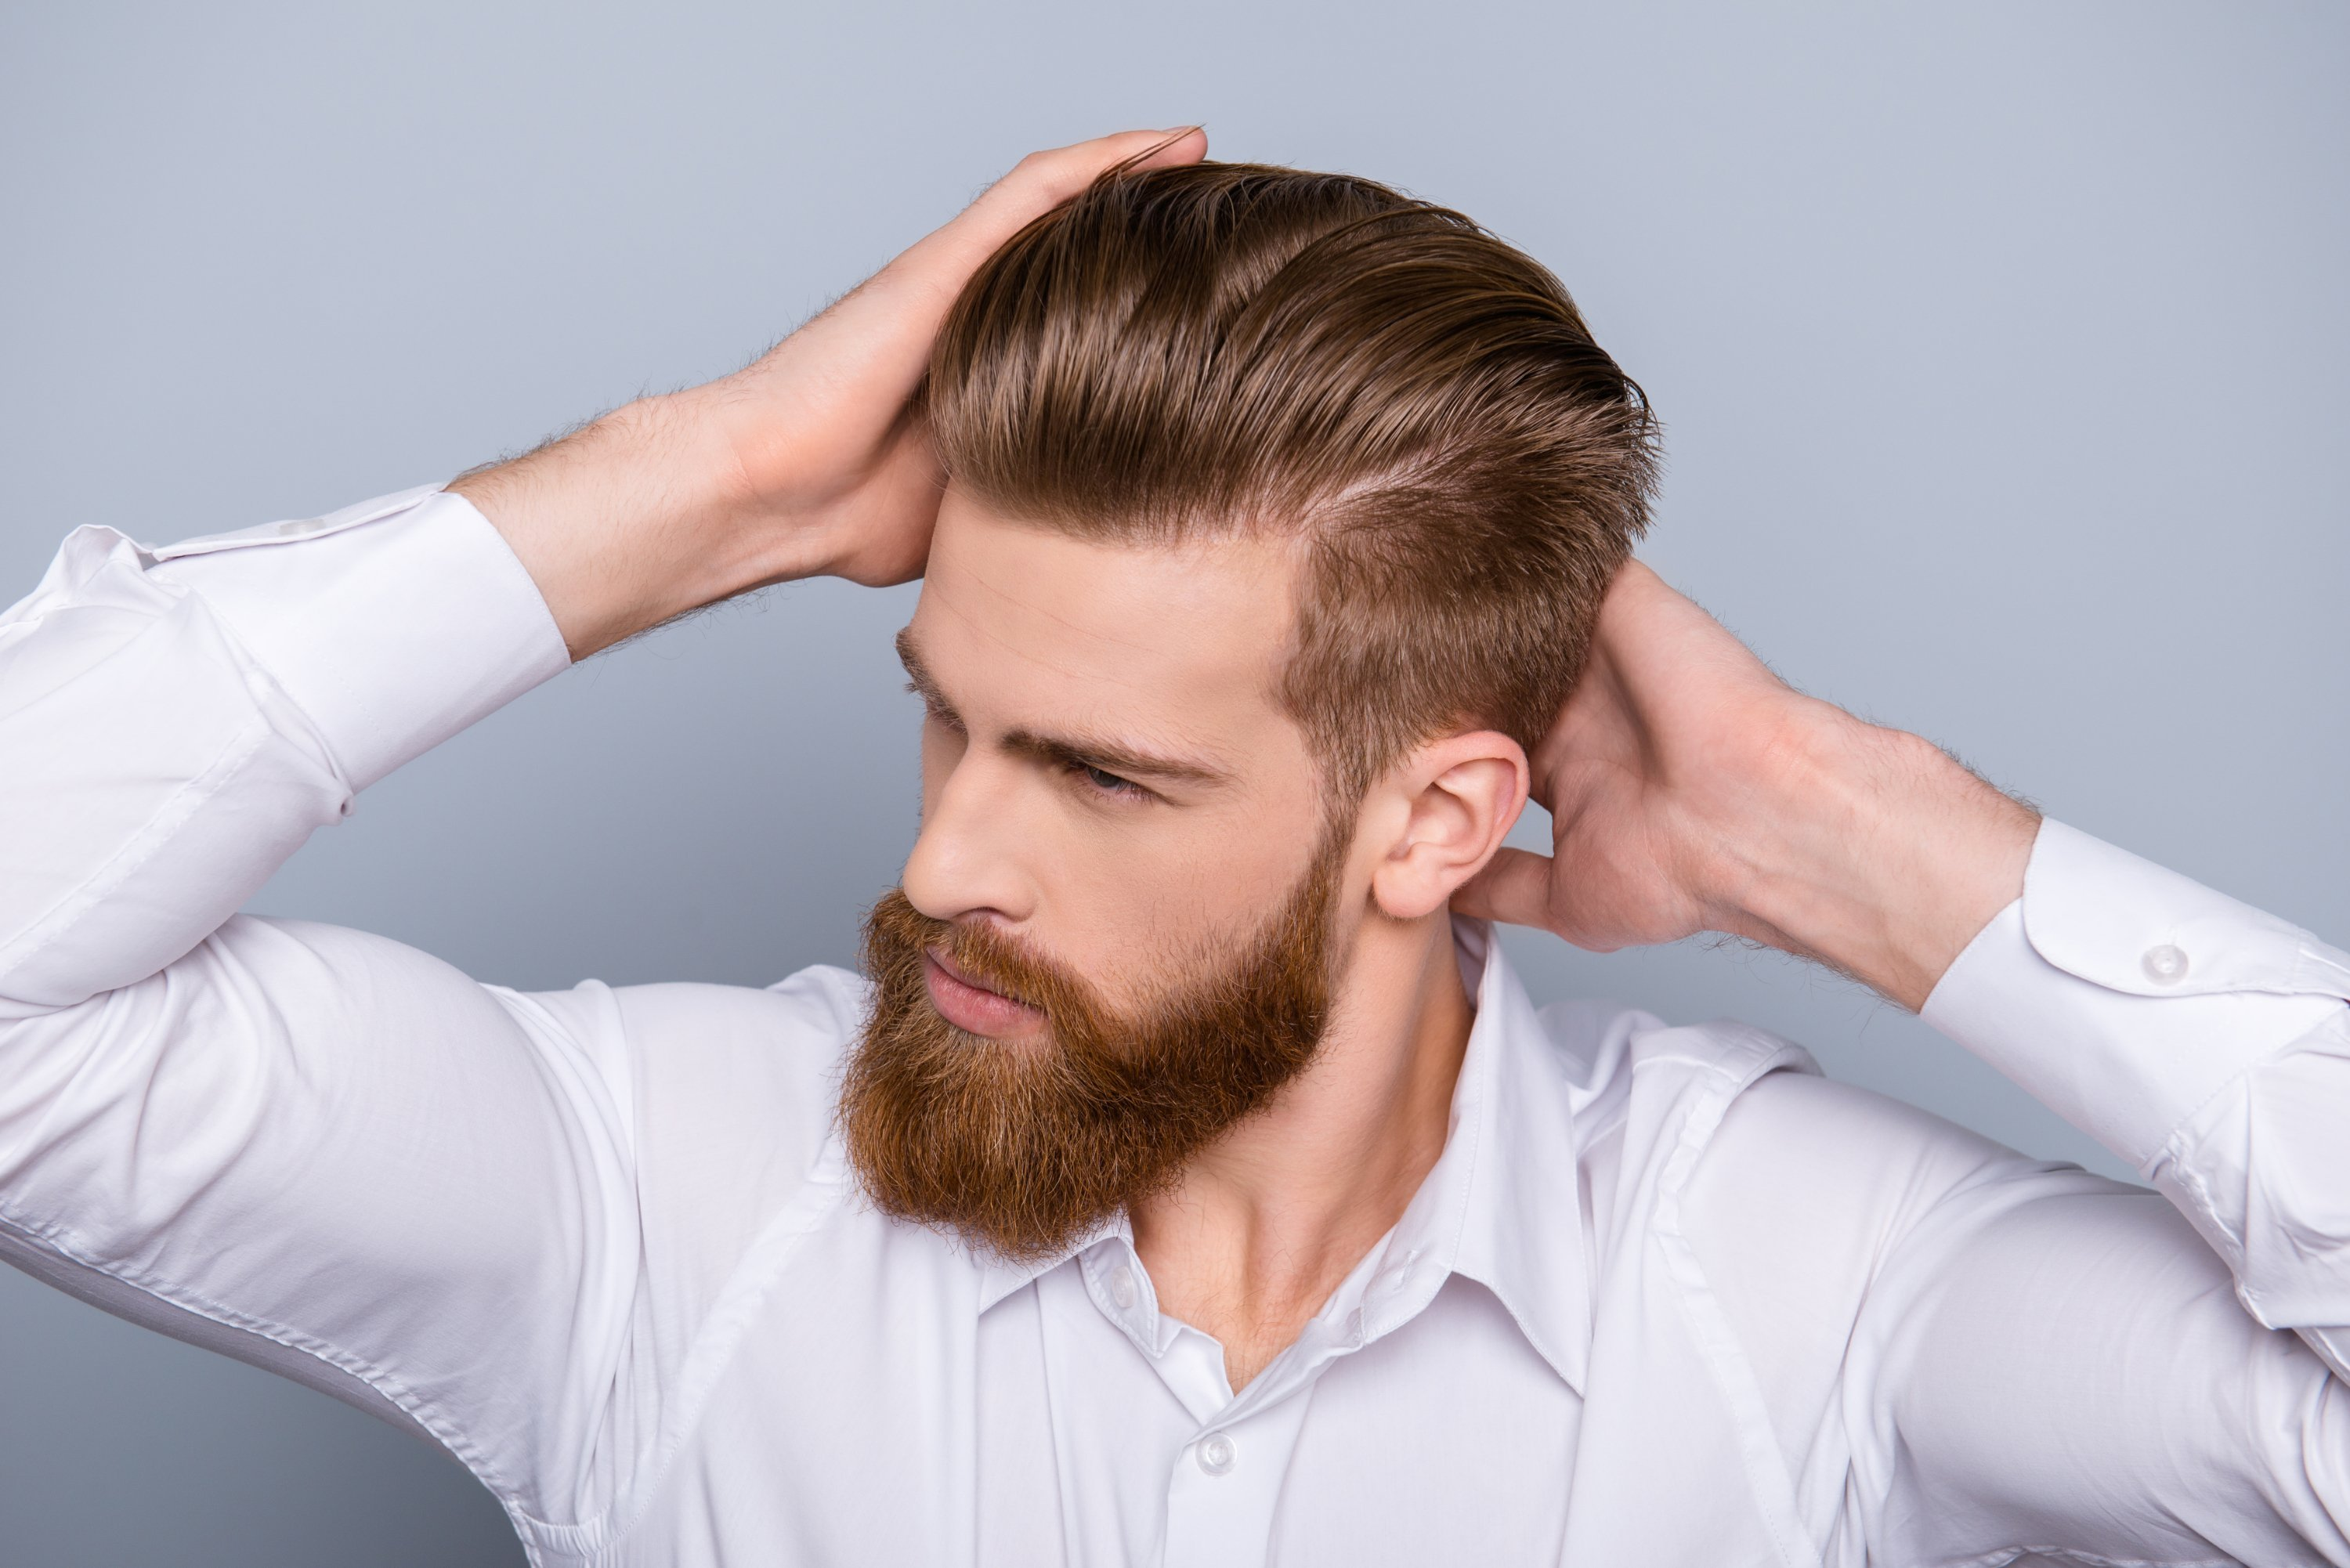 Find the Hairstyle and Beard Combo That's Right For You